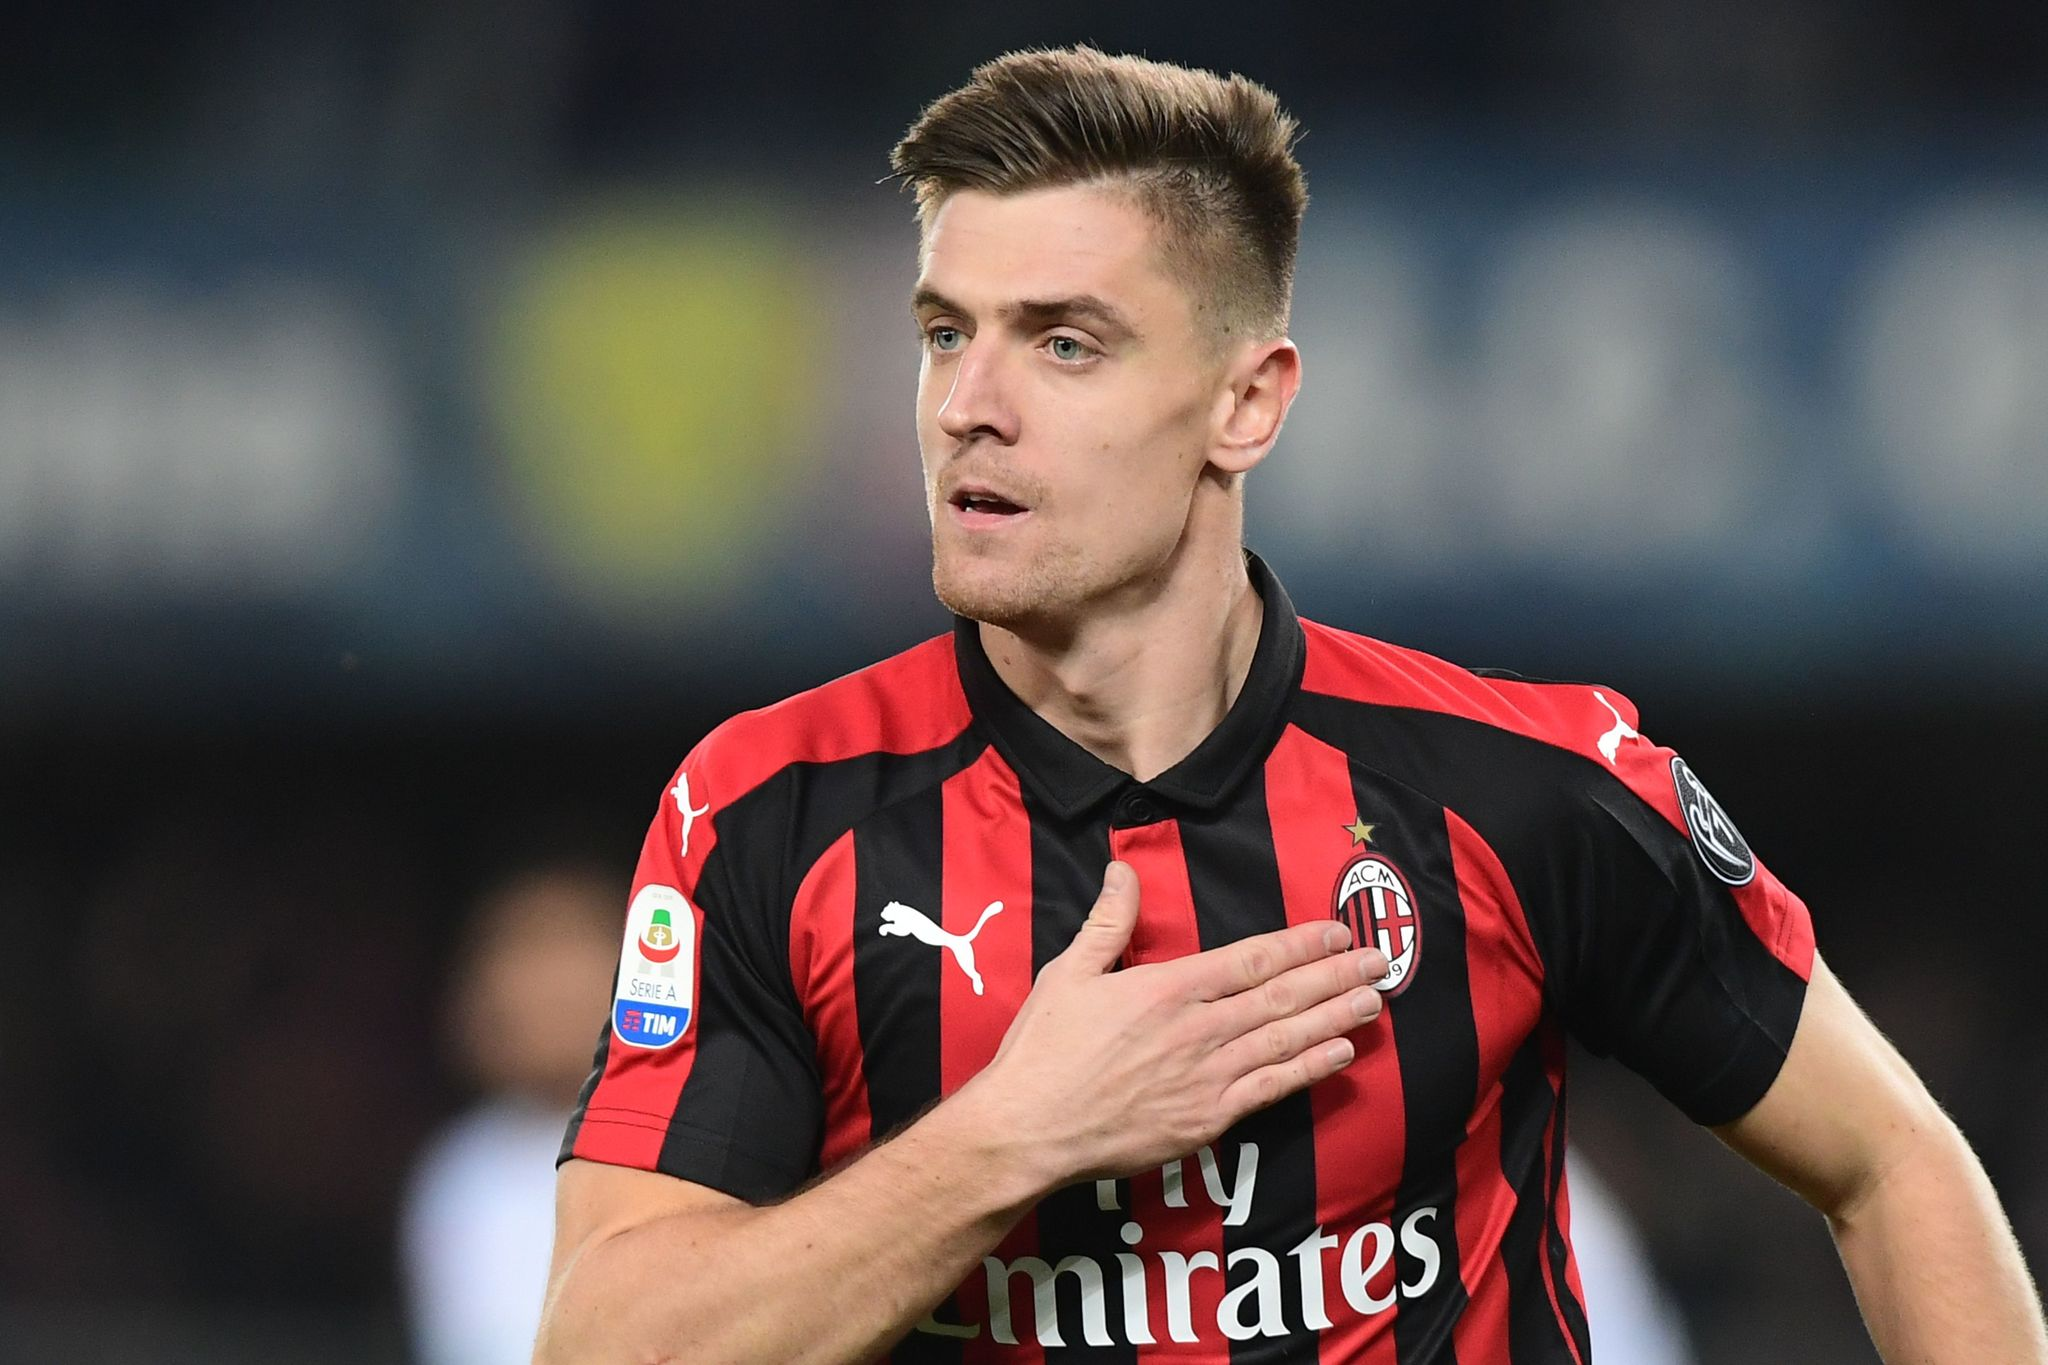 AC Milans Polish forward Krzysztof <HIT>Piatek</HIT> celebrates after scoring during the Italian Serie A football match Chievo Verona vs AC Milan on March 9, 2019 at the <HIT>Marcantonio-Bentegodi</HIT> stadium in Verona. (Photo by Miguel MEDINA / AFP)